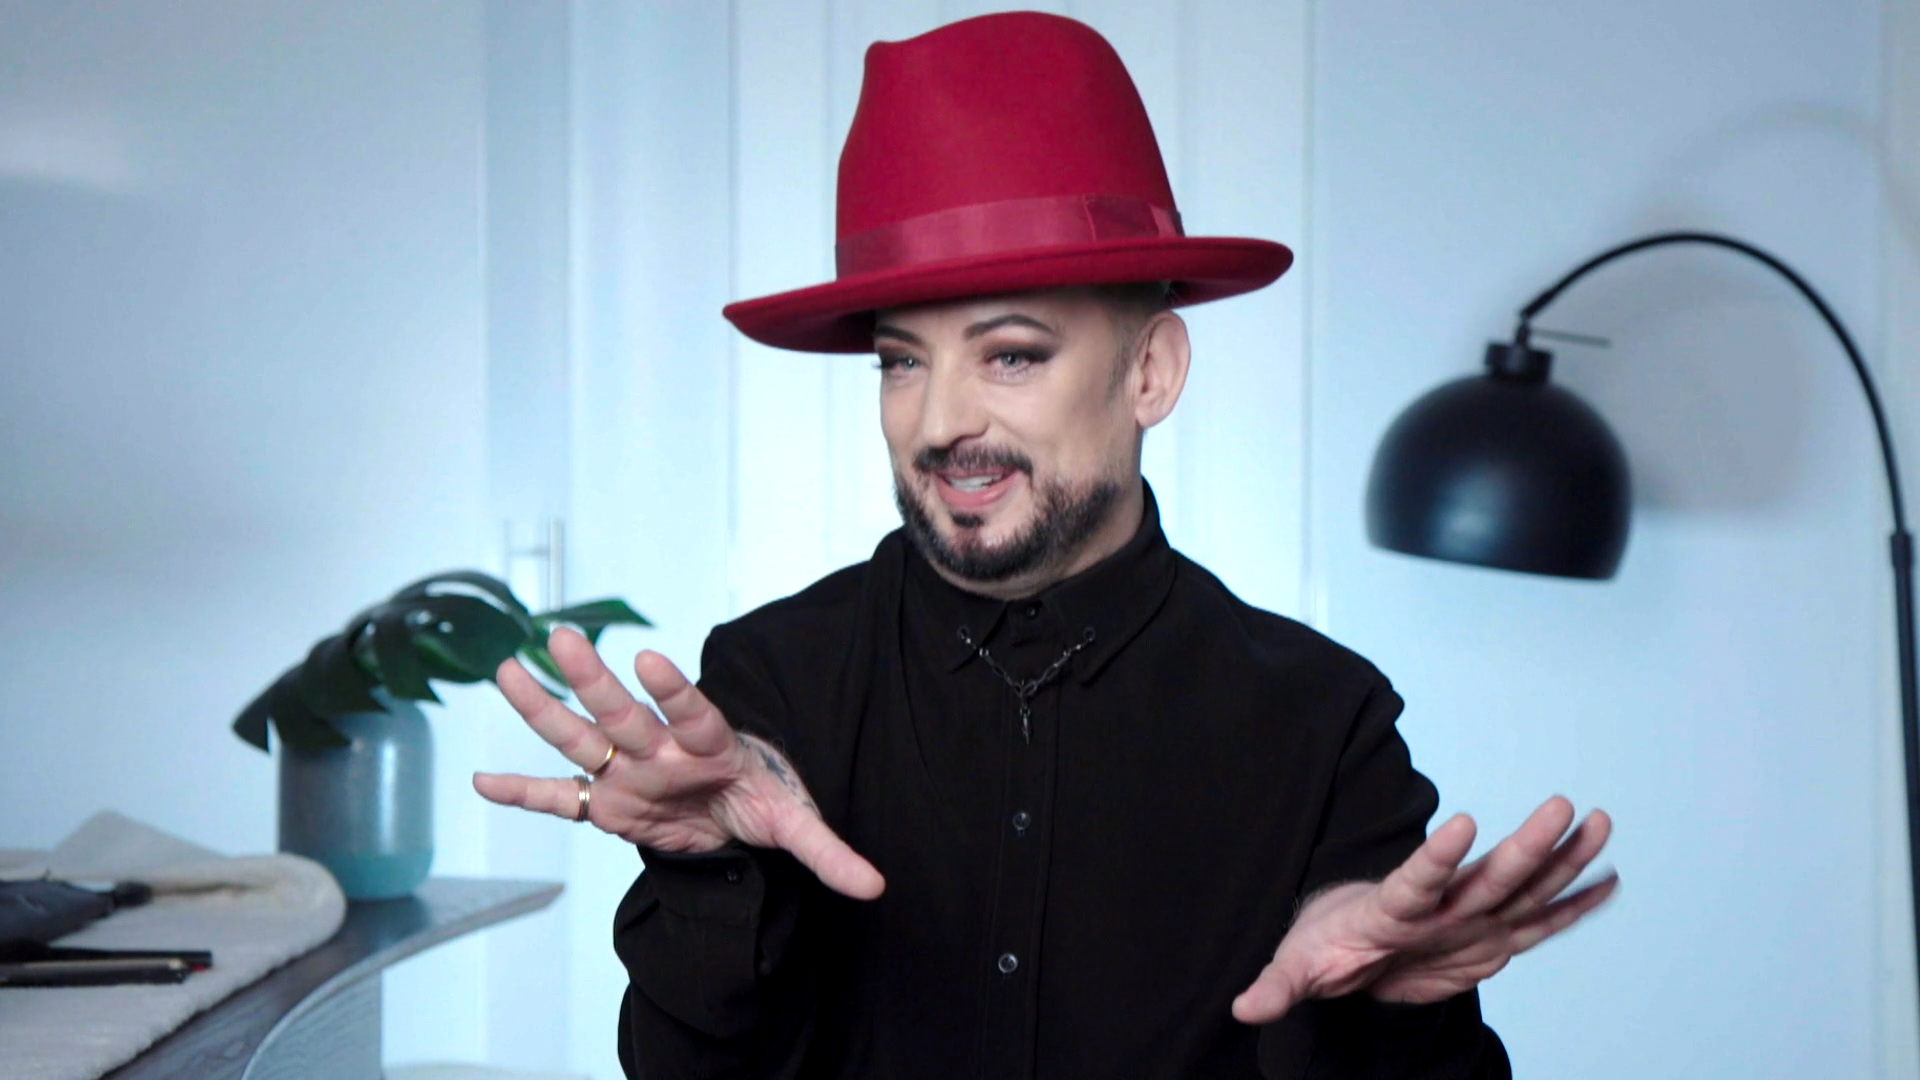 What music does Boy George listen to? Here's a peek at his playlist